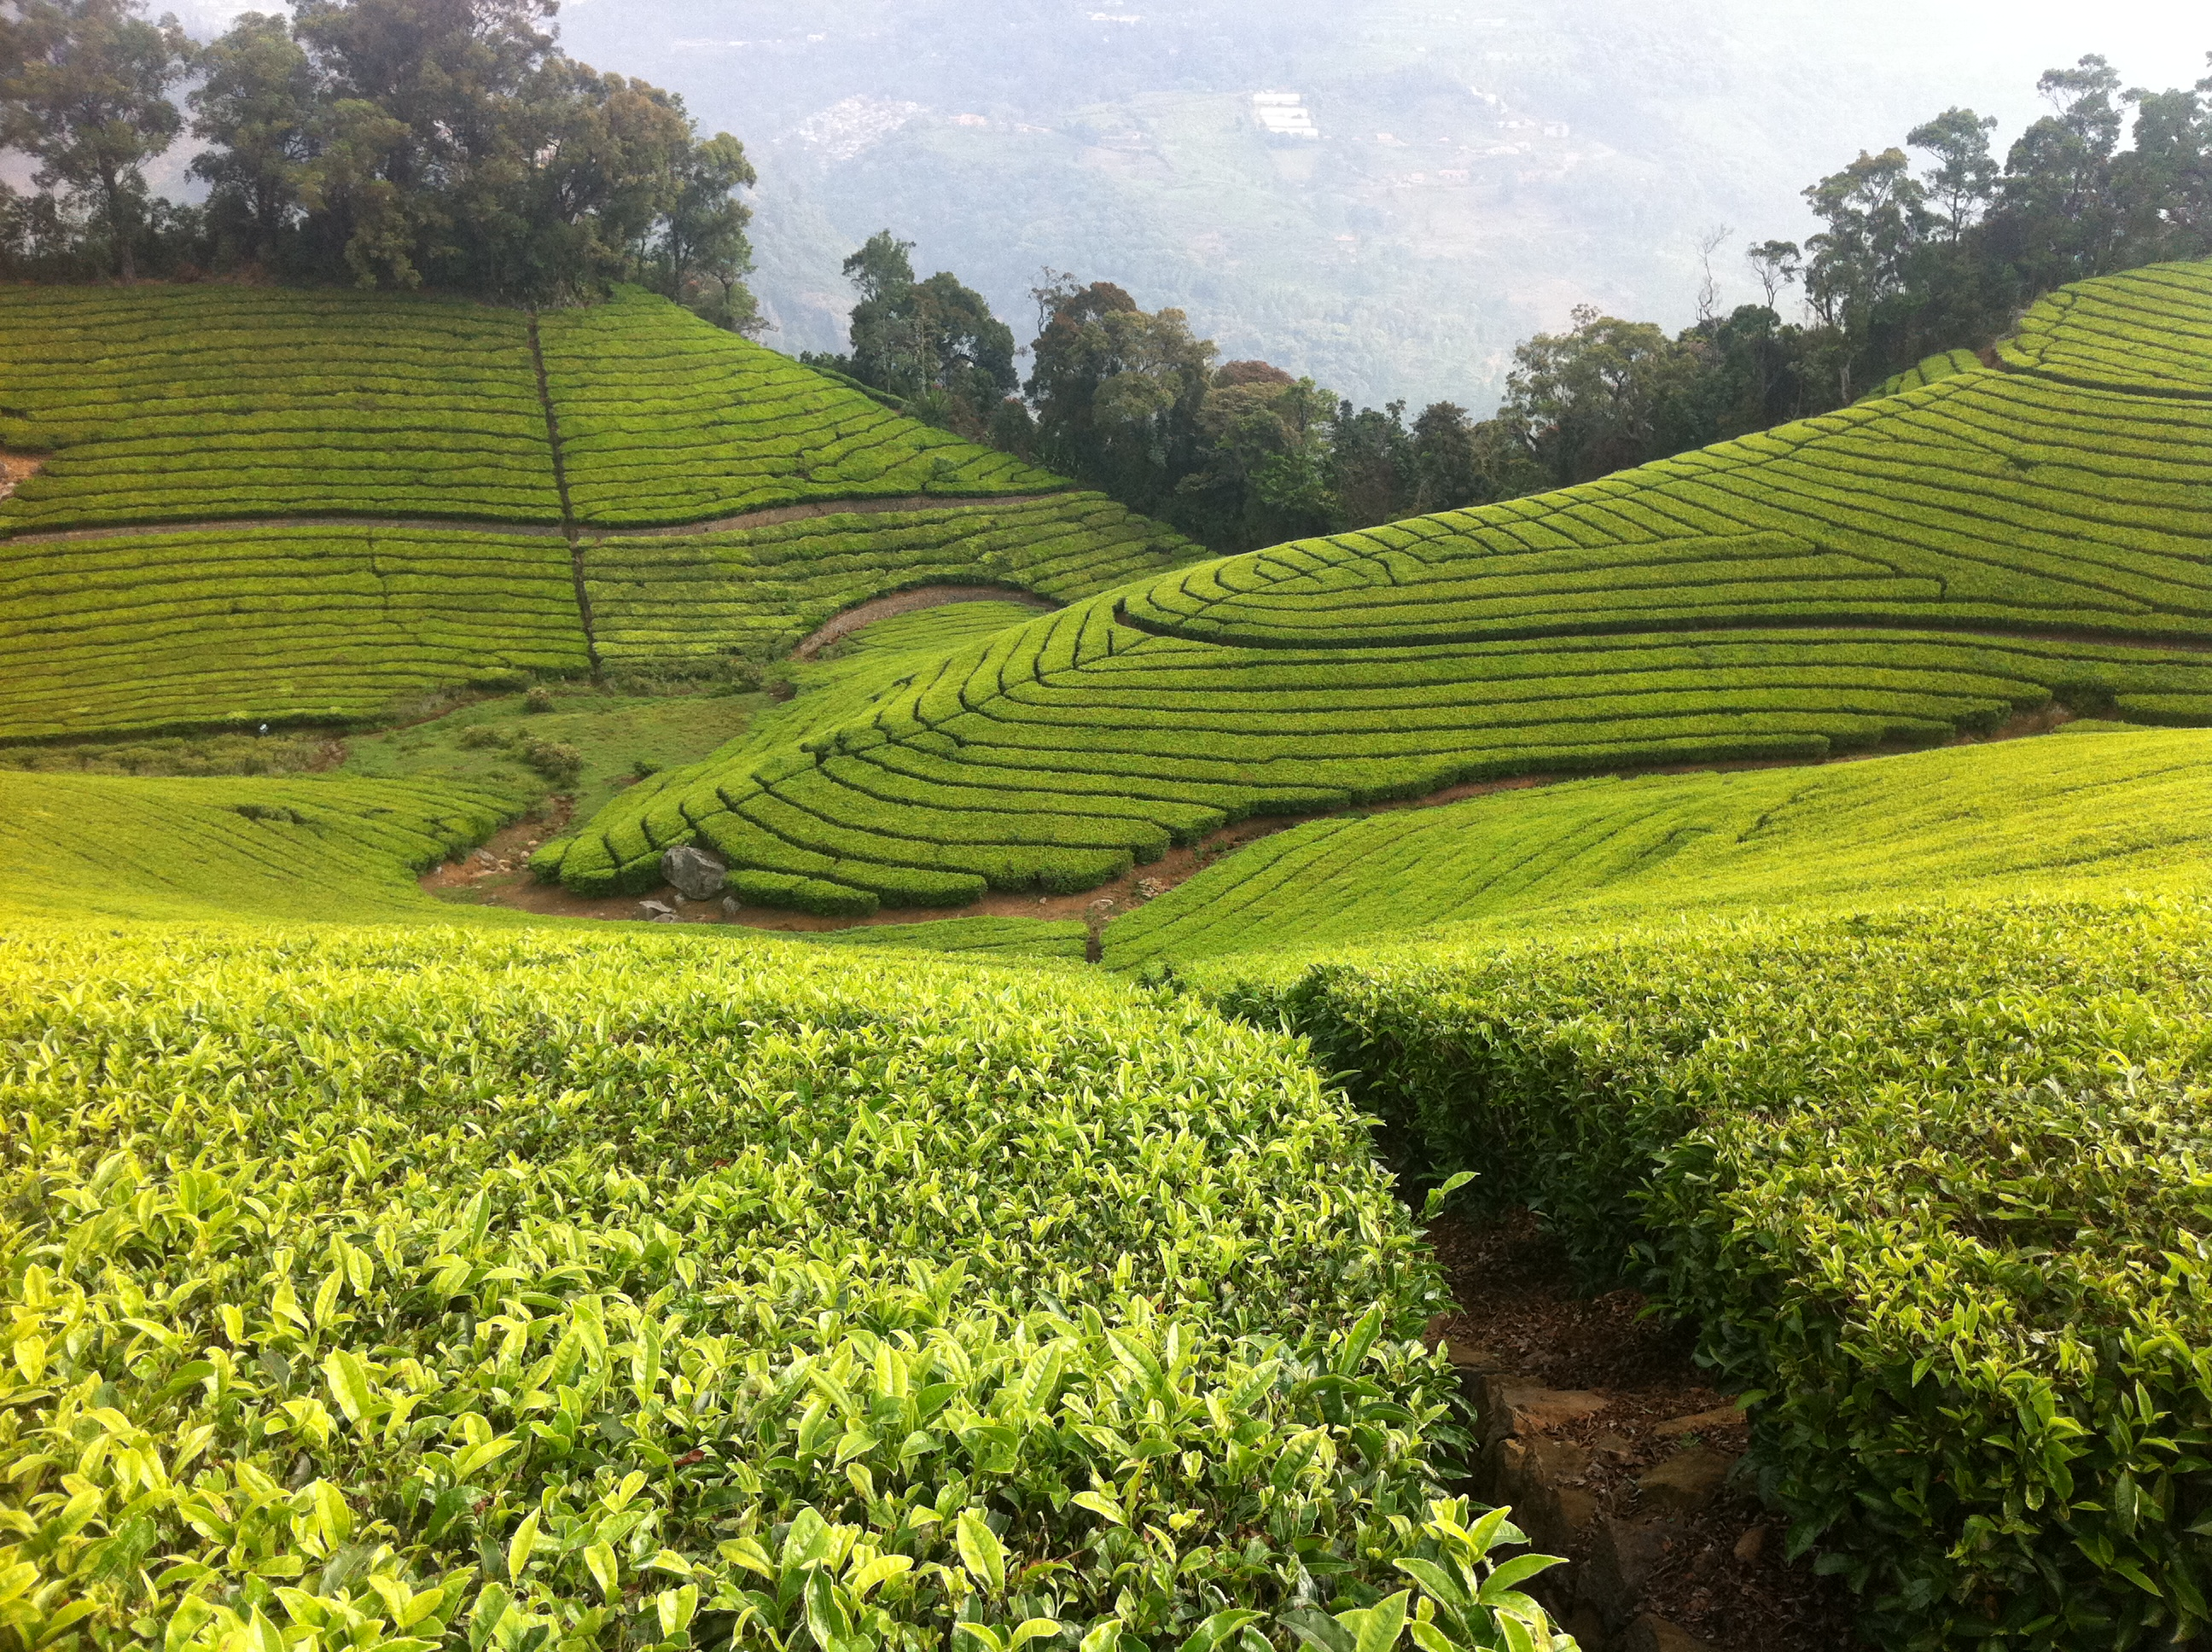 tea plantation 2015-4-29 tea is grown in different states of myanmar the total tea plantation area is around 70,000 hectares with an annual production of 78 million kg green leaves.